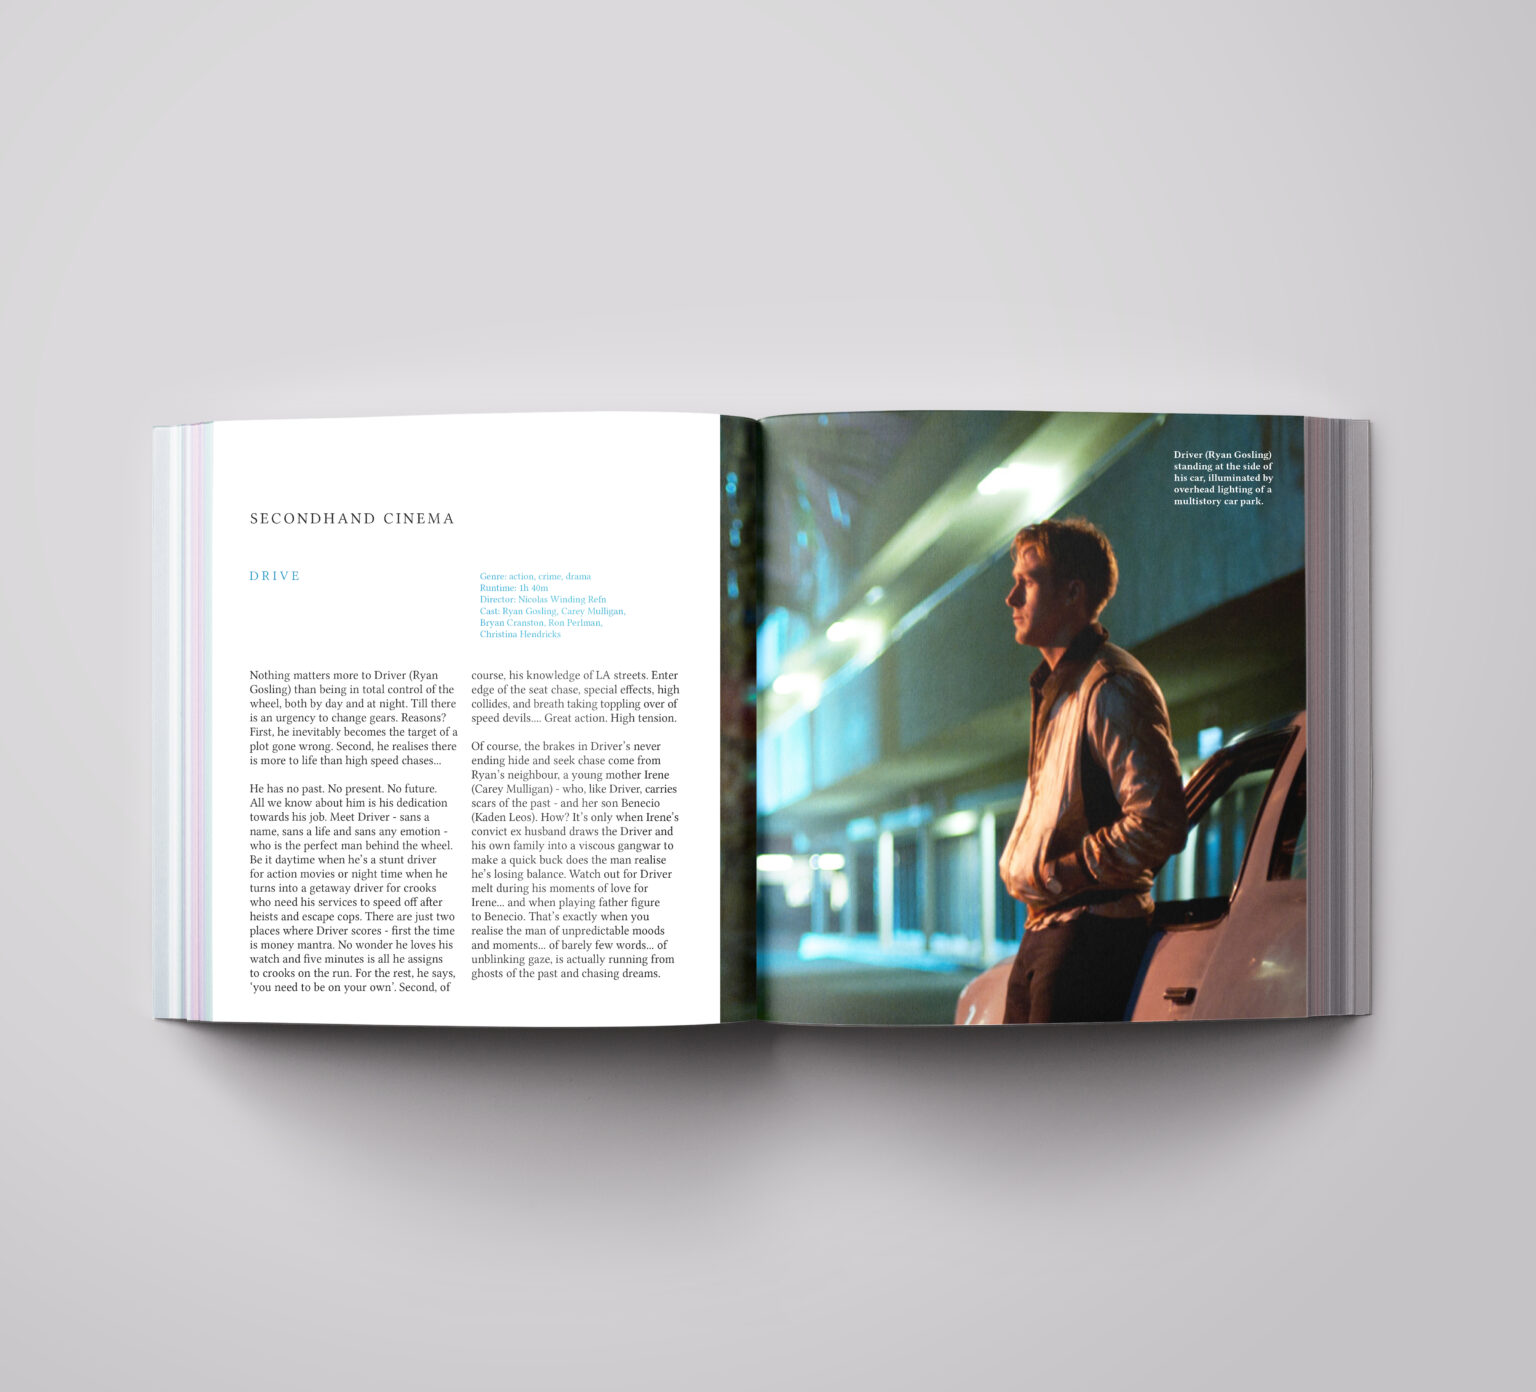 mockup spread, second page of the second hand cinema.